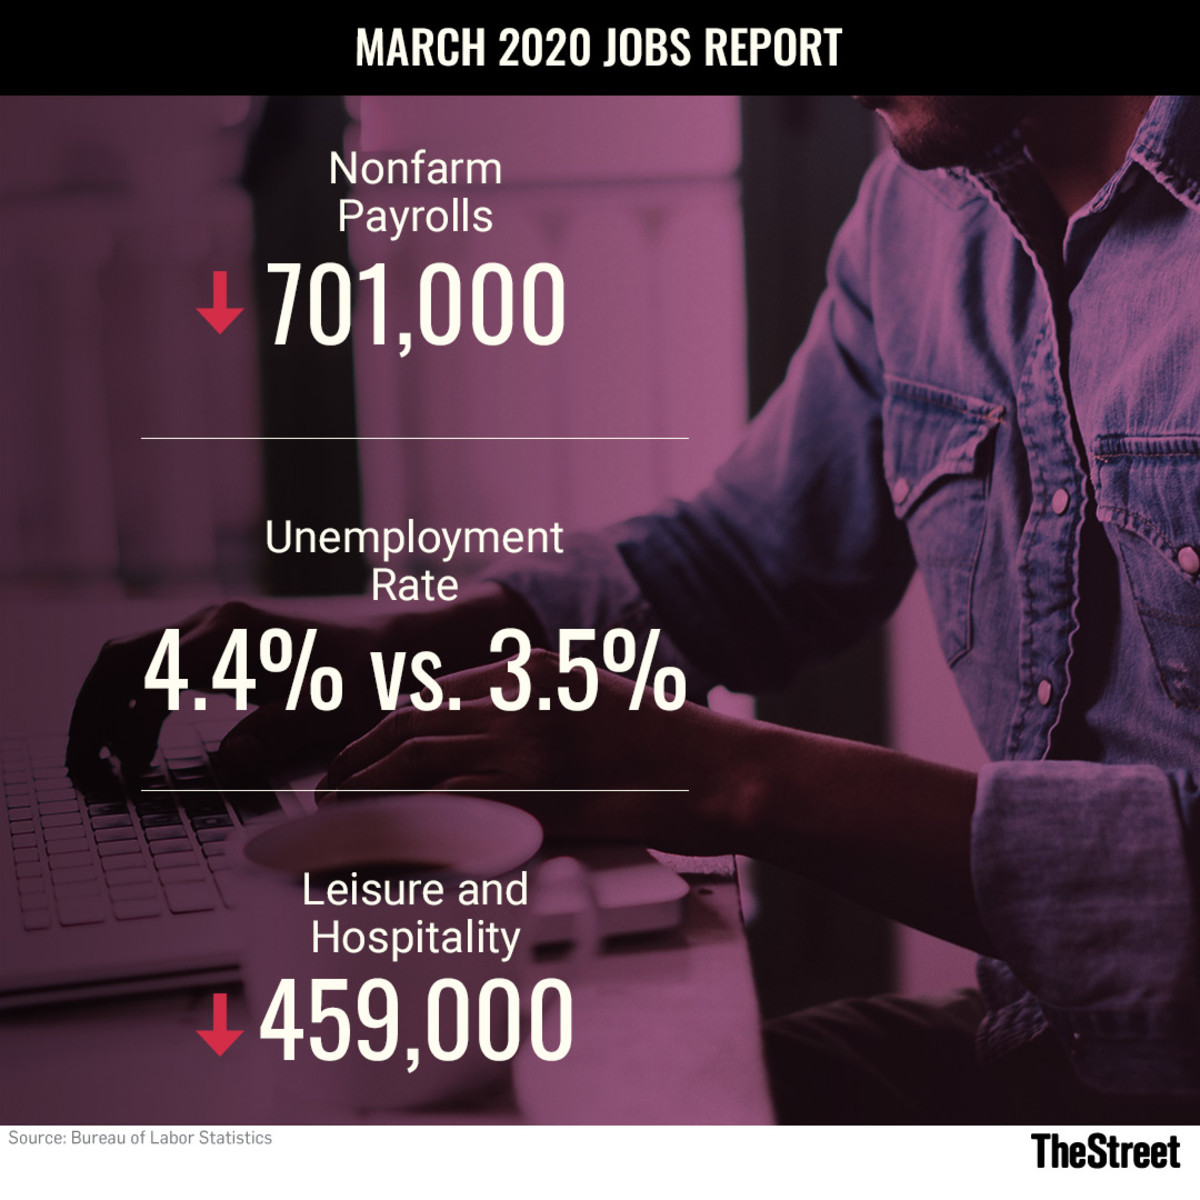 Jobs Report March 2020